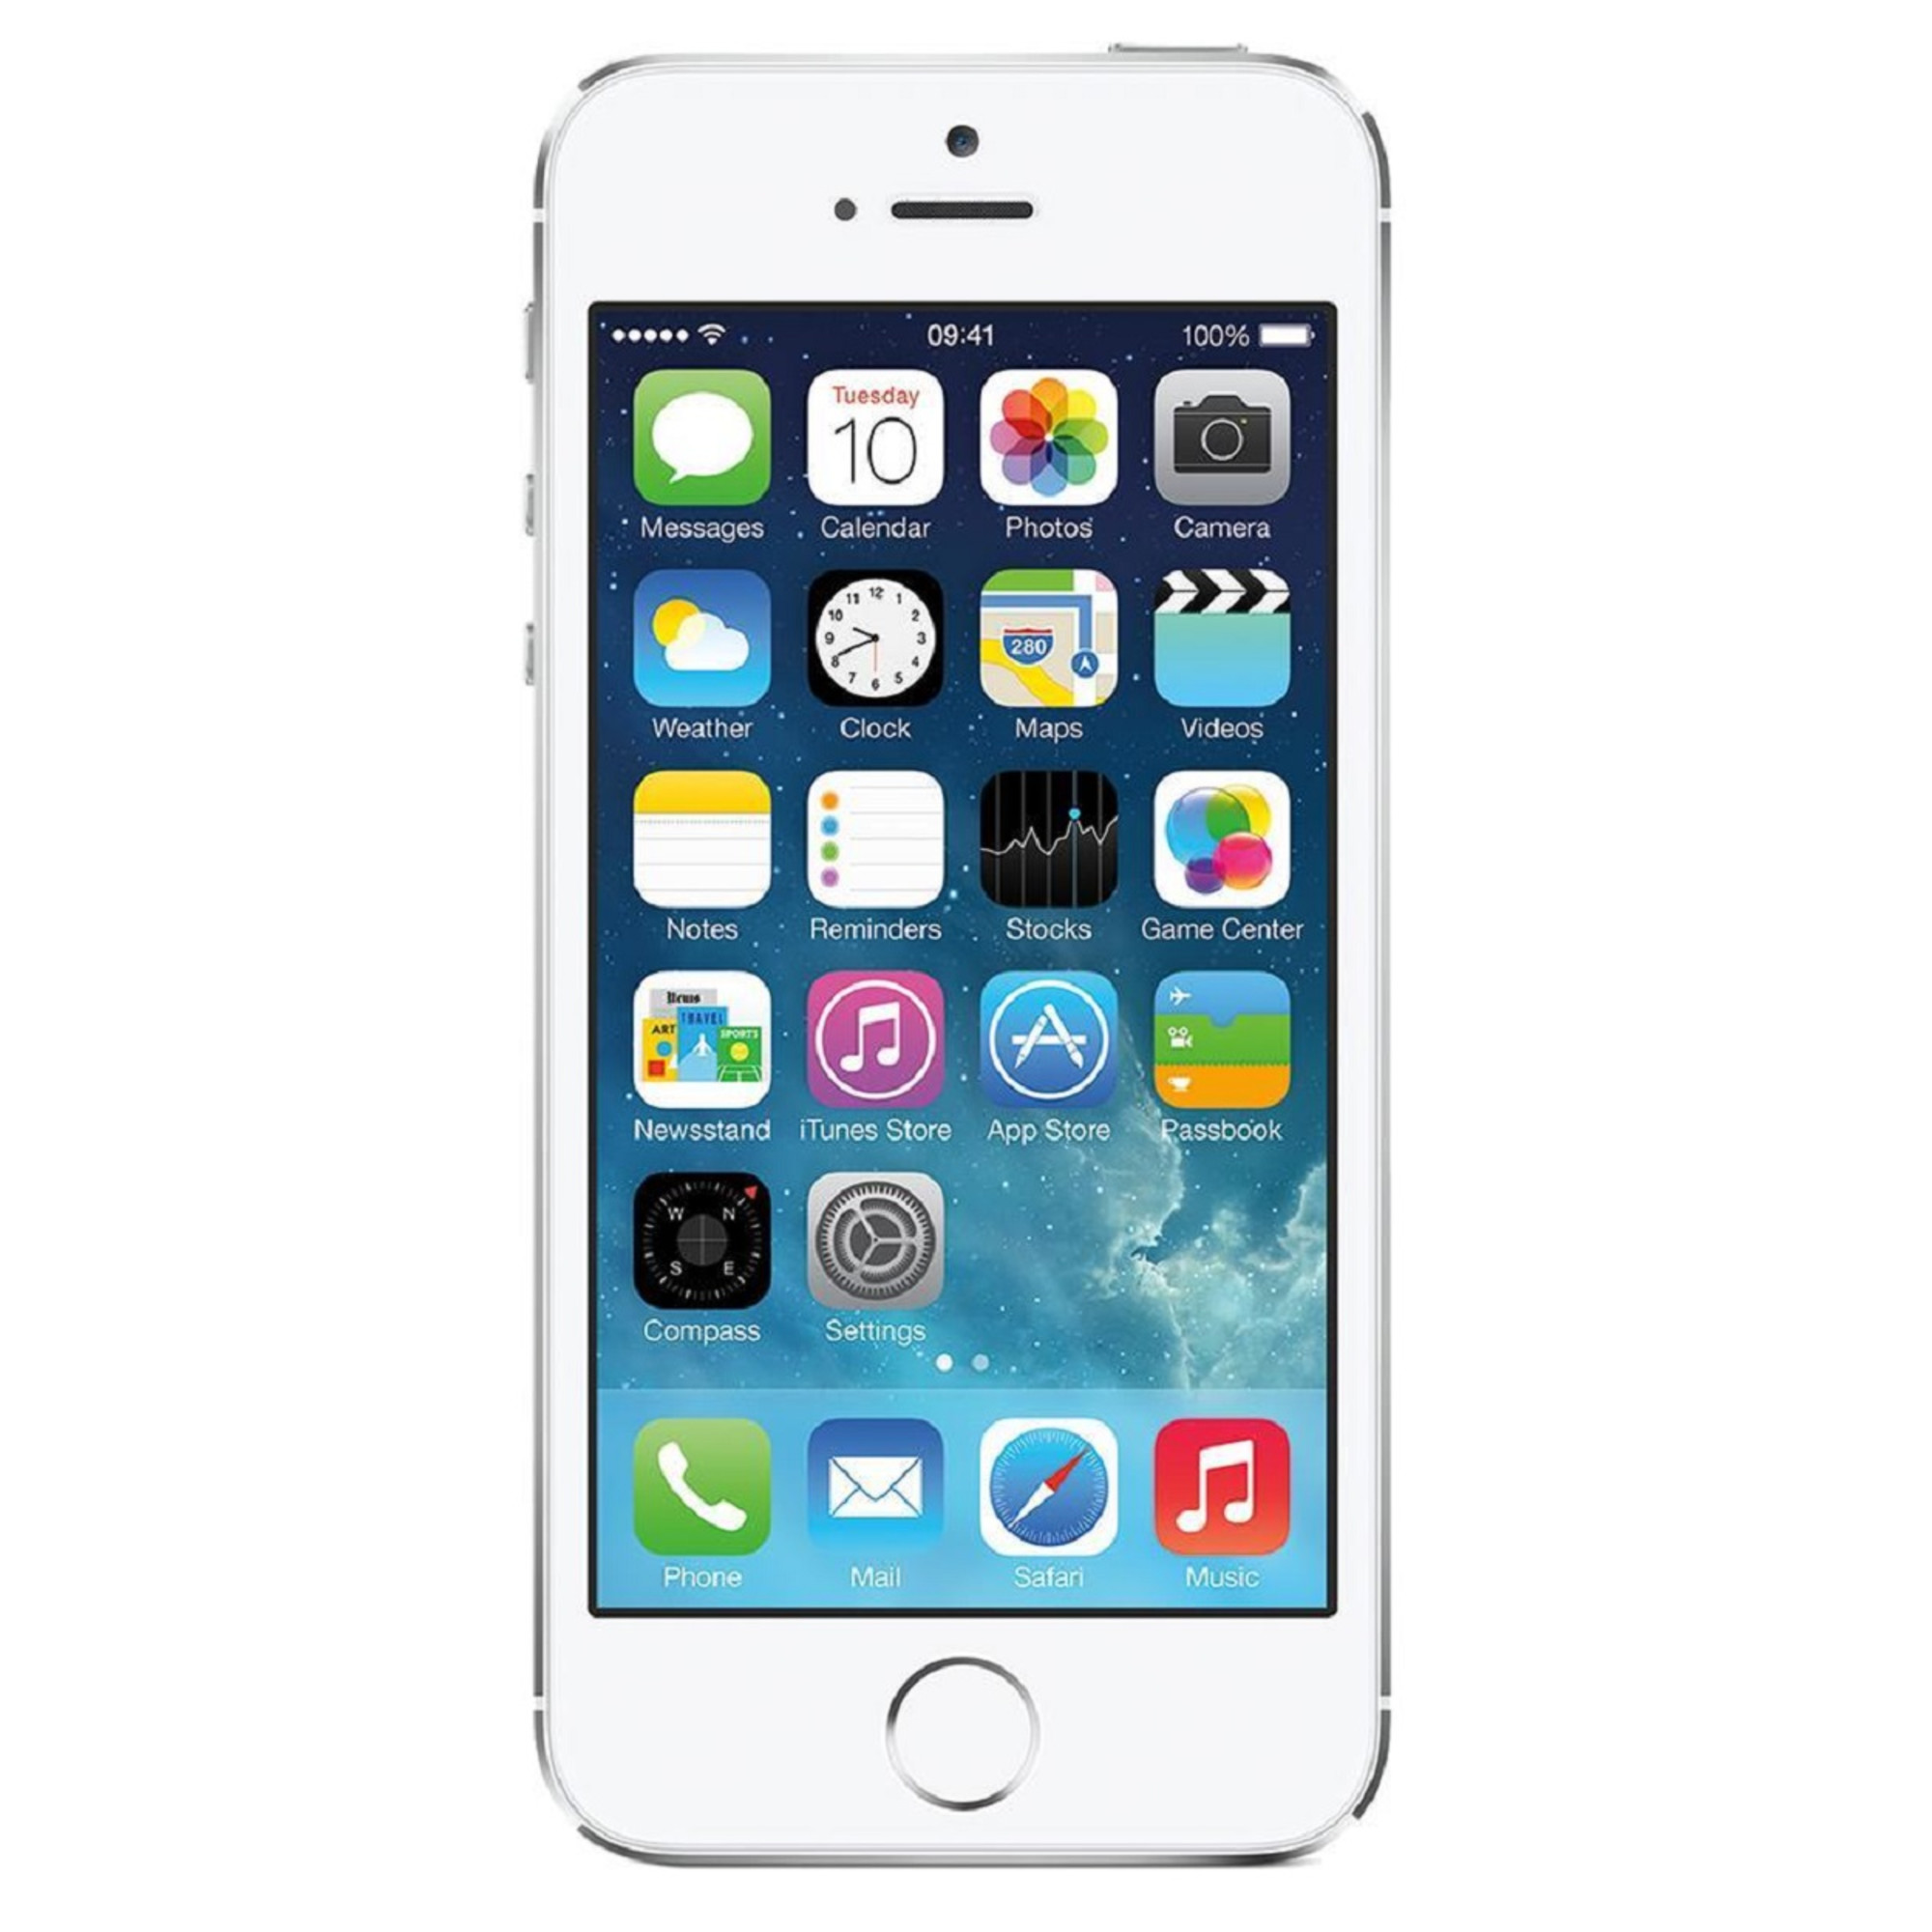 apple iphone 5s 16gb unlocked gsm lte dualcore 8mp phone certified refurbished ebay. Black Bedroom Furniture Sets. Home Design Ideas